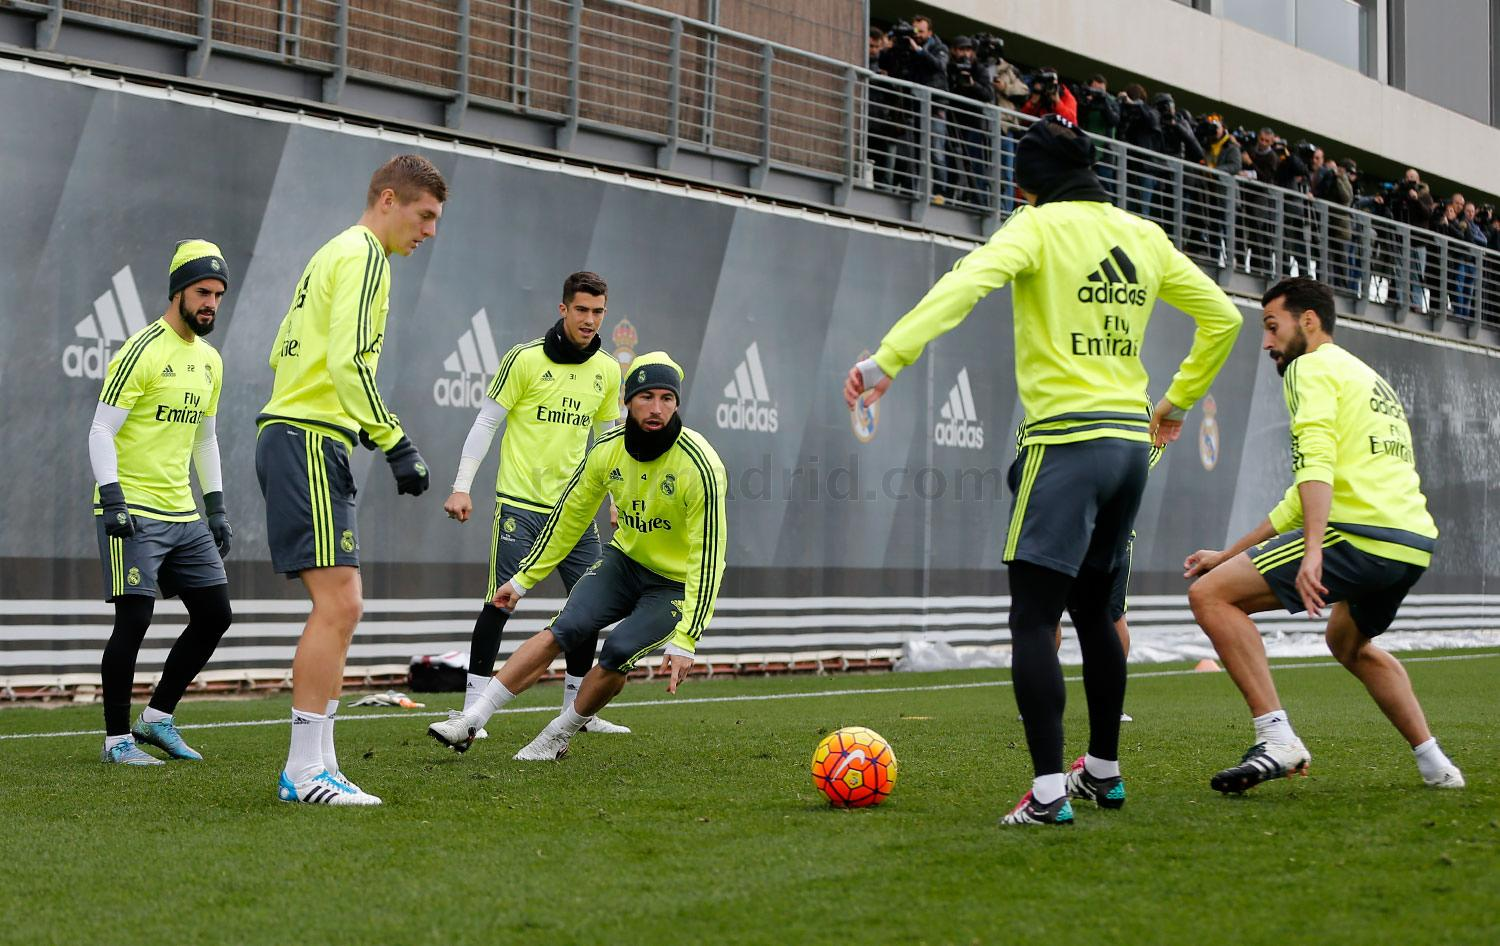 Real Madrid - Entrenamiento del Real Madrid - 08-01-2016